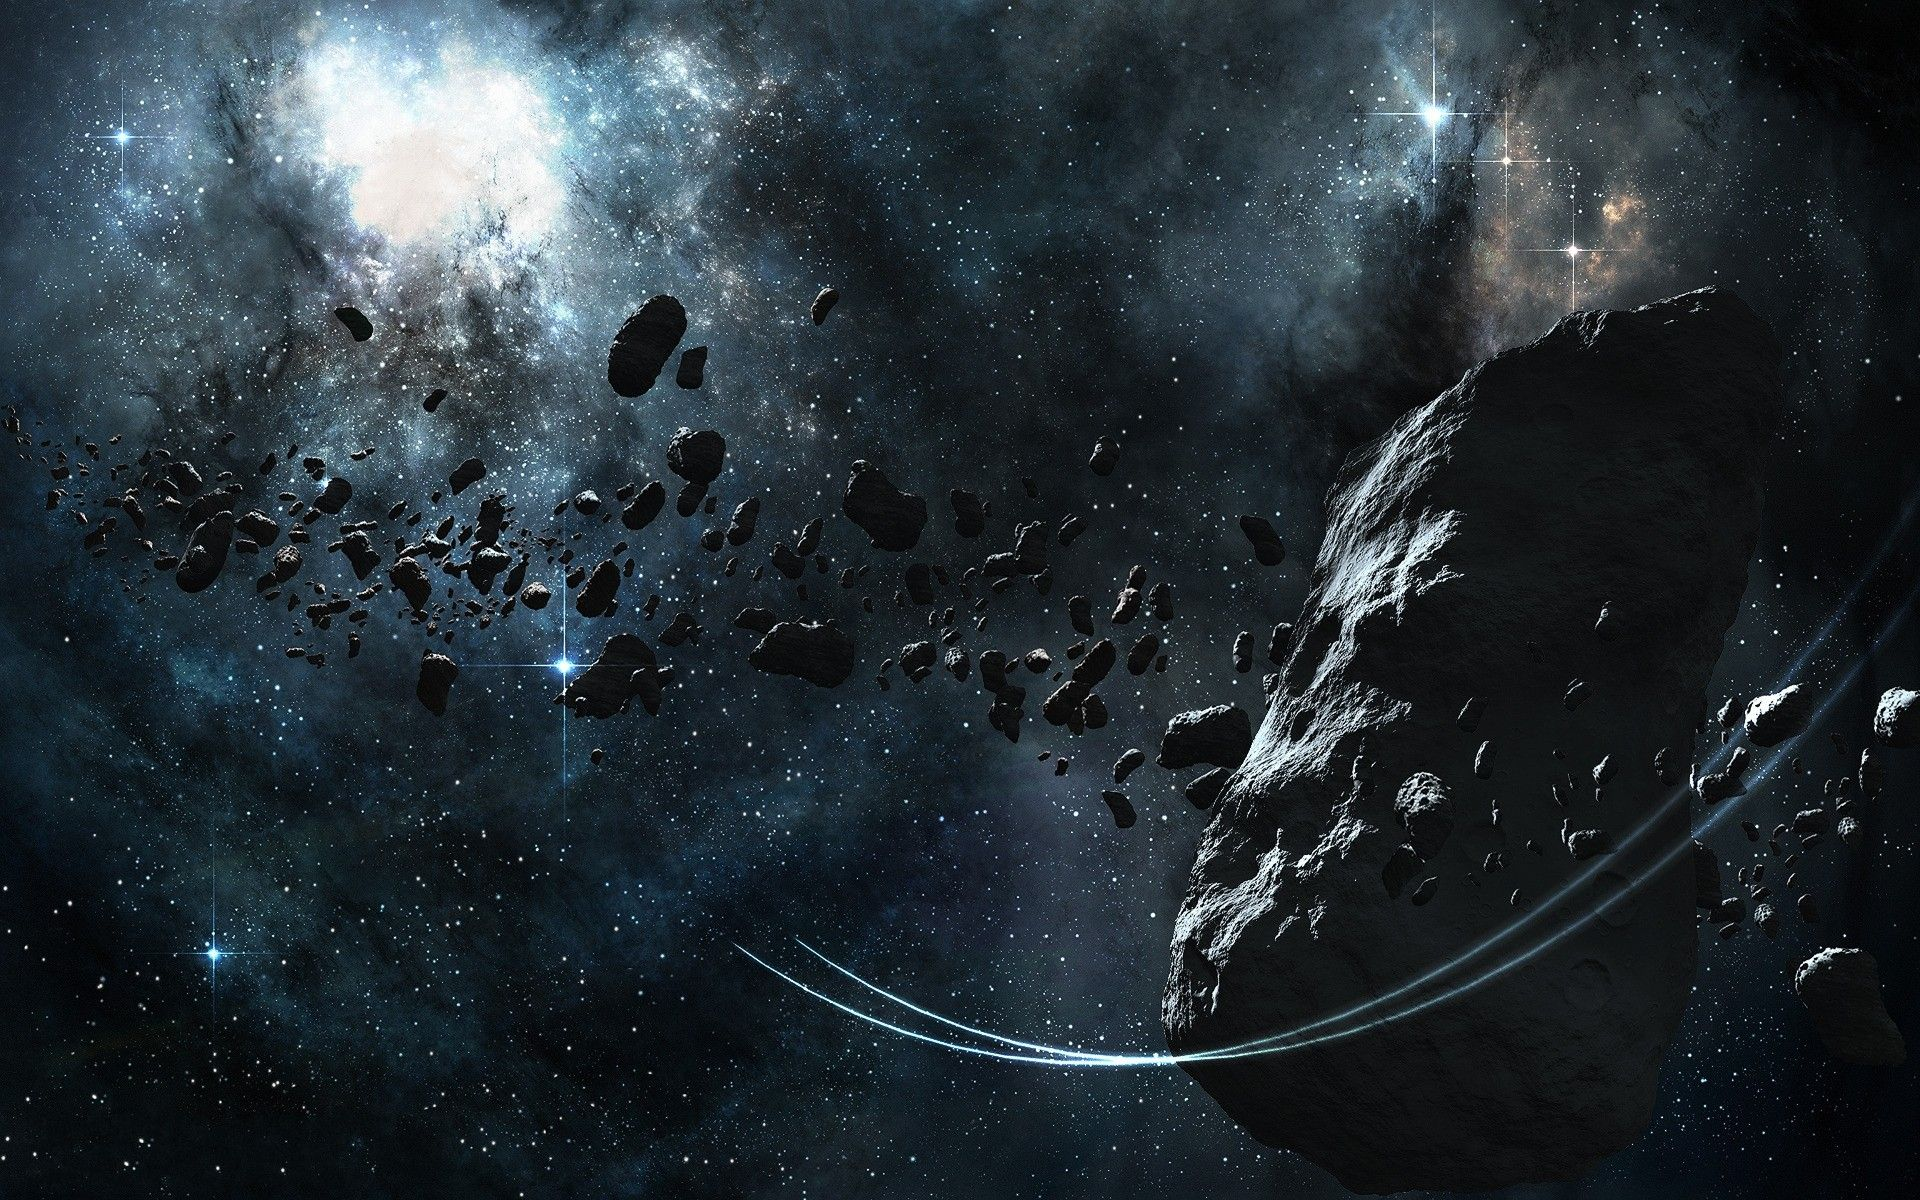 asteroid in space blowing up - photo #25